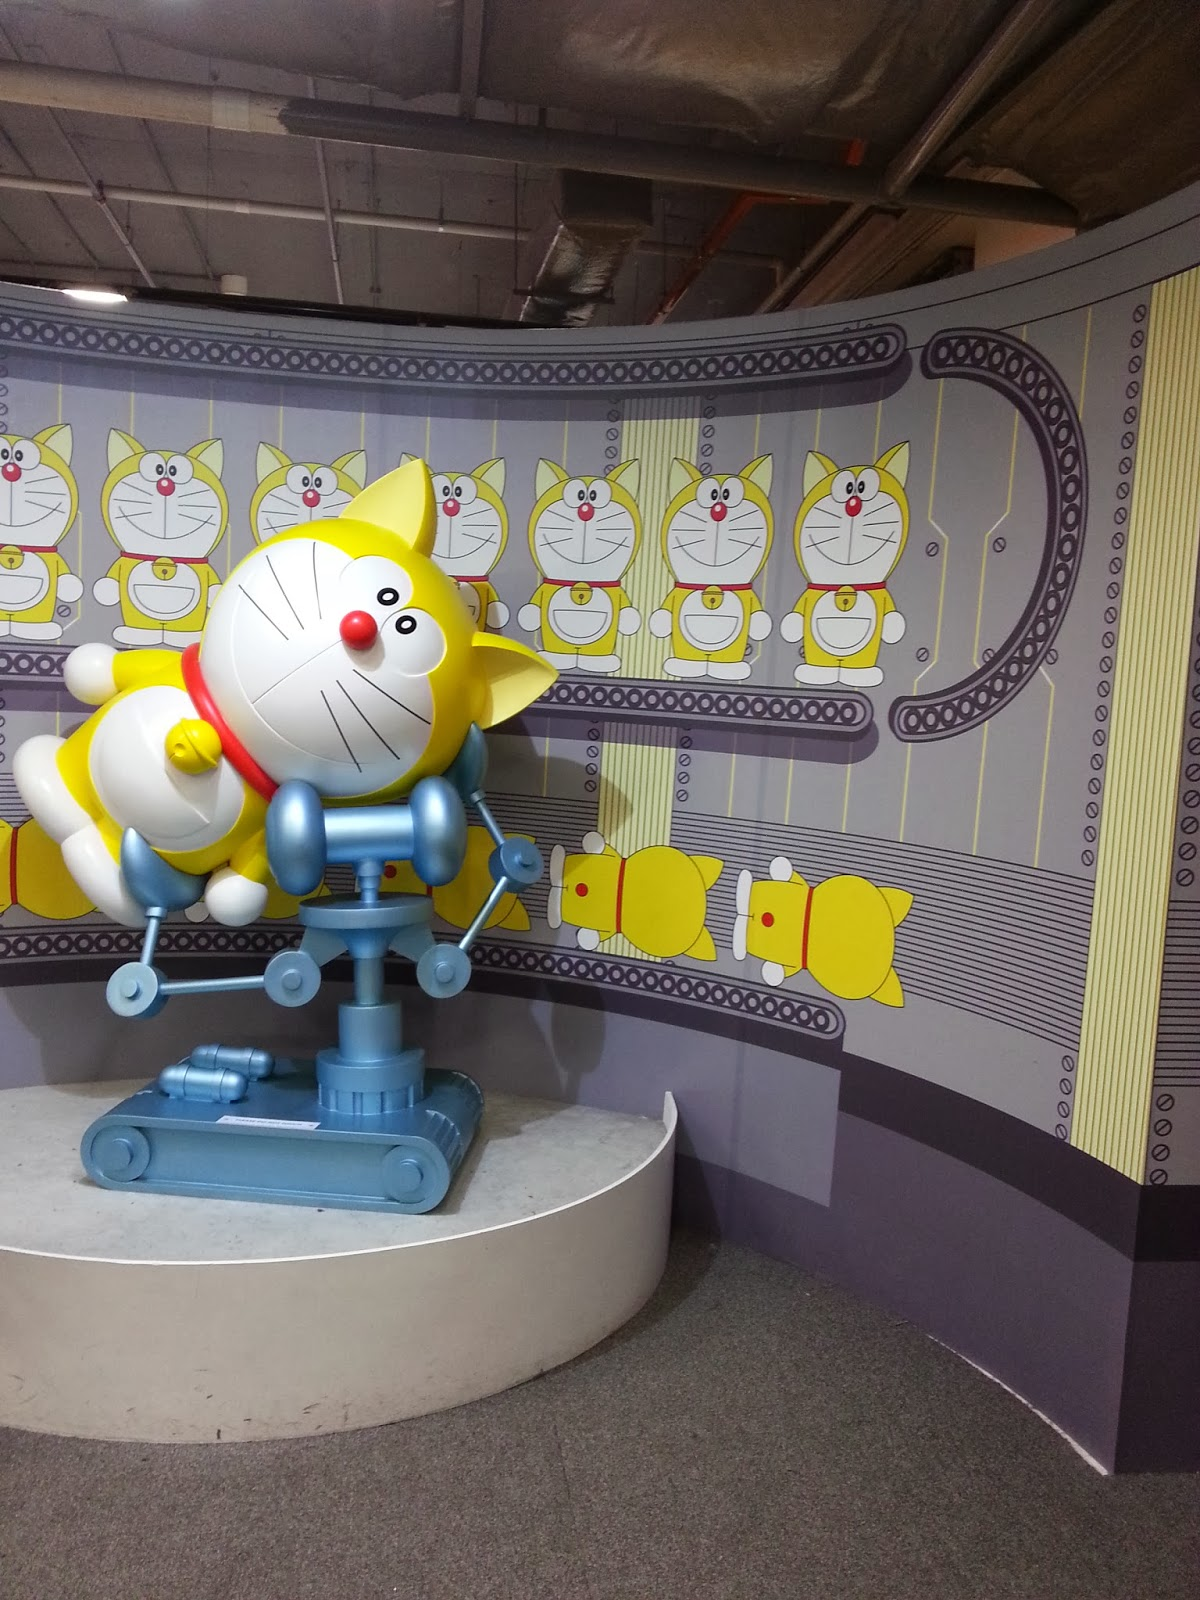 Let s check out this largest doraemon exhibition ever in malaysia first in south east asia happens from 14th december 2013 23rd march 2014 showcases 100